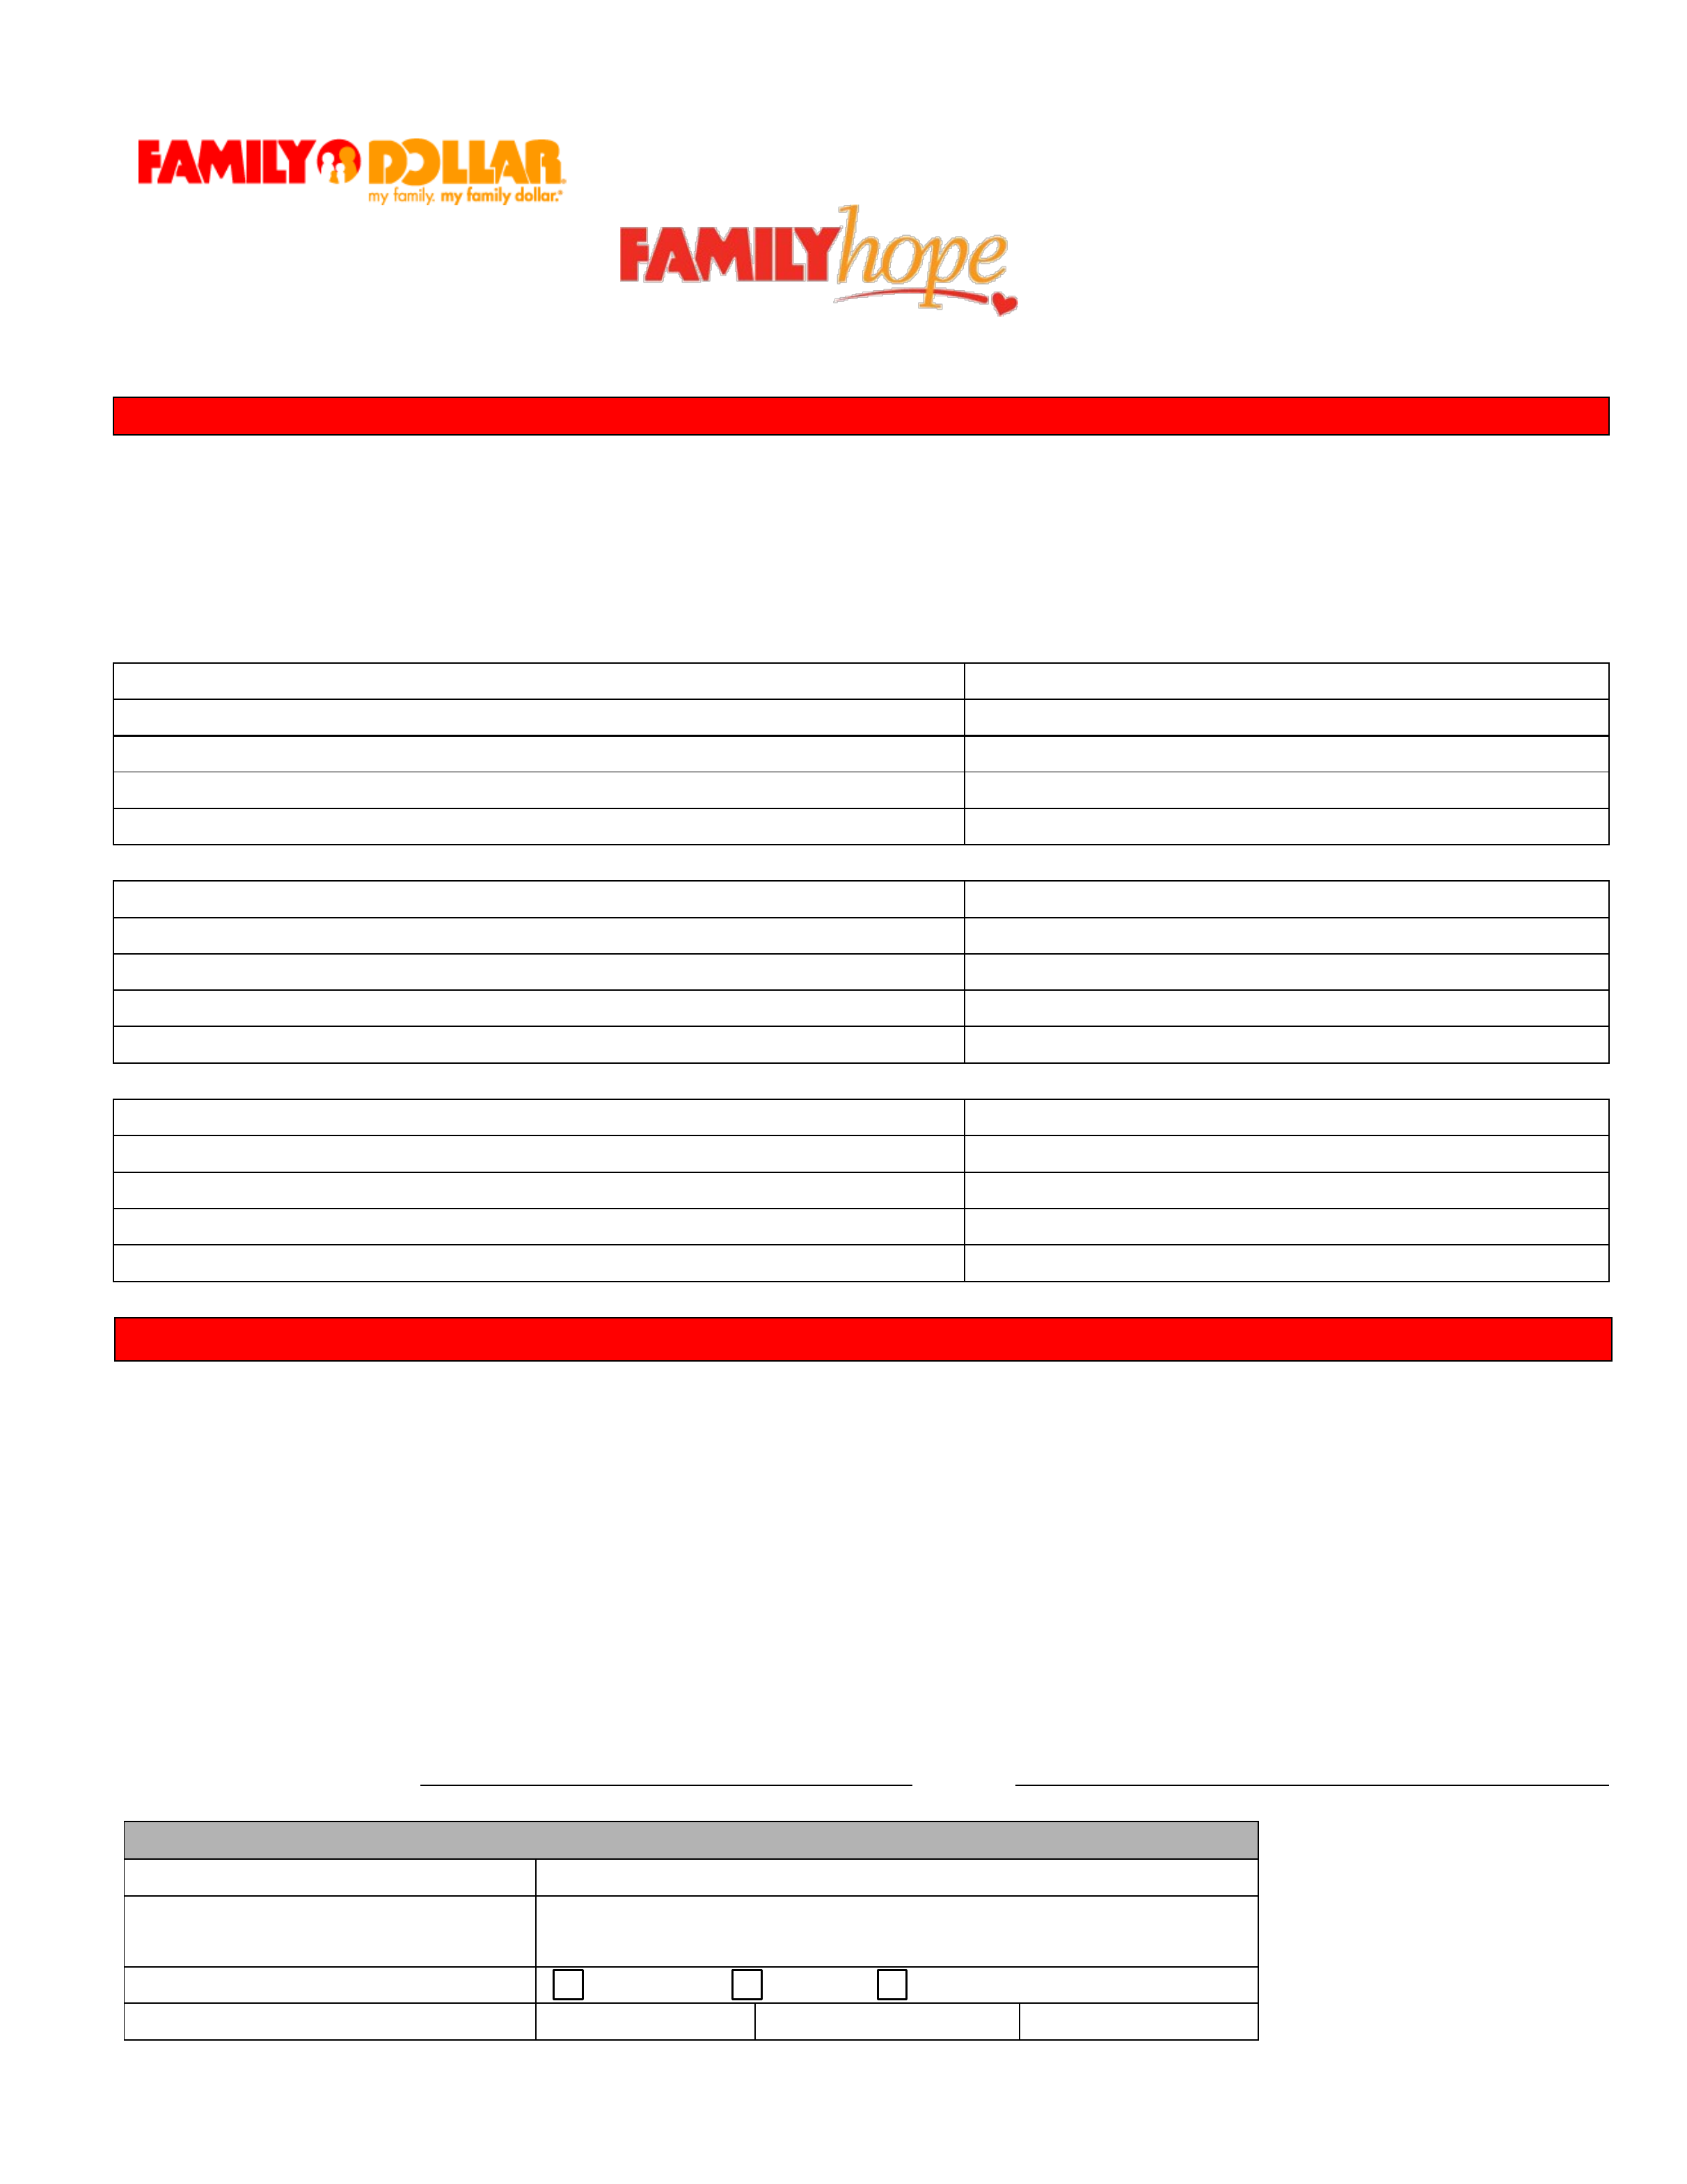 Family Dollar Job Application Form for Financial Assistant Free Download